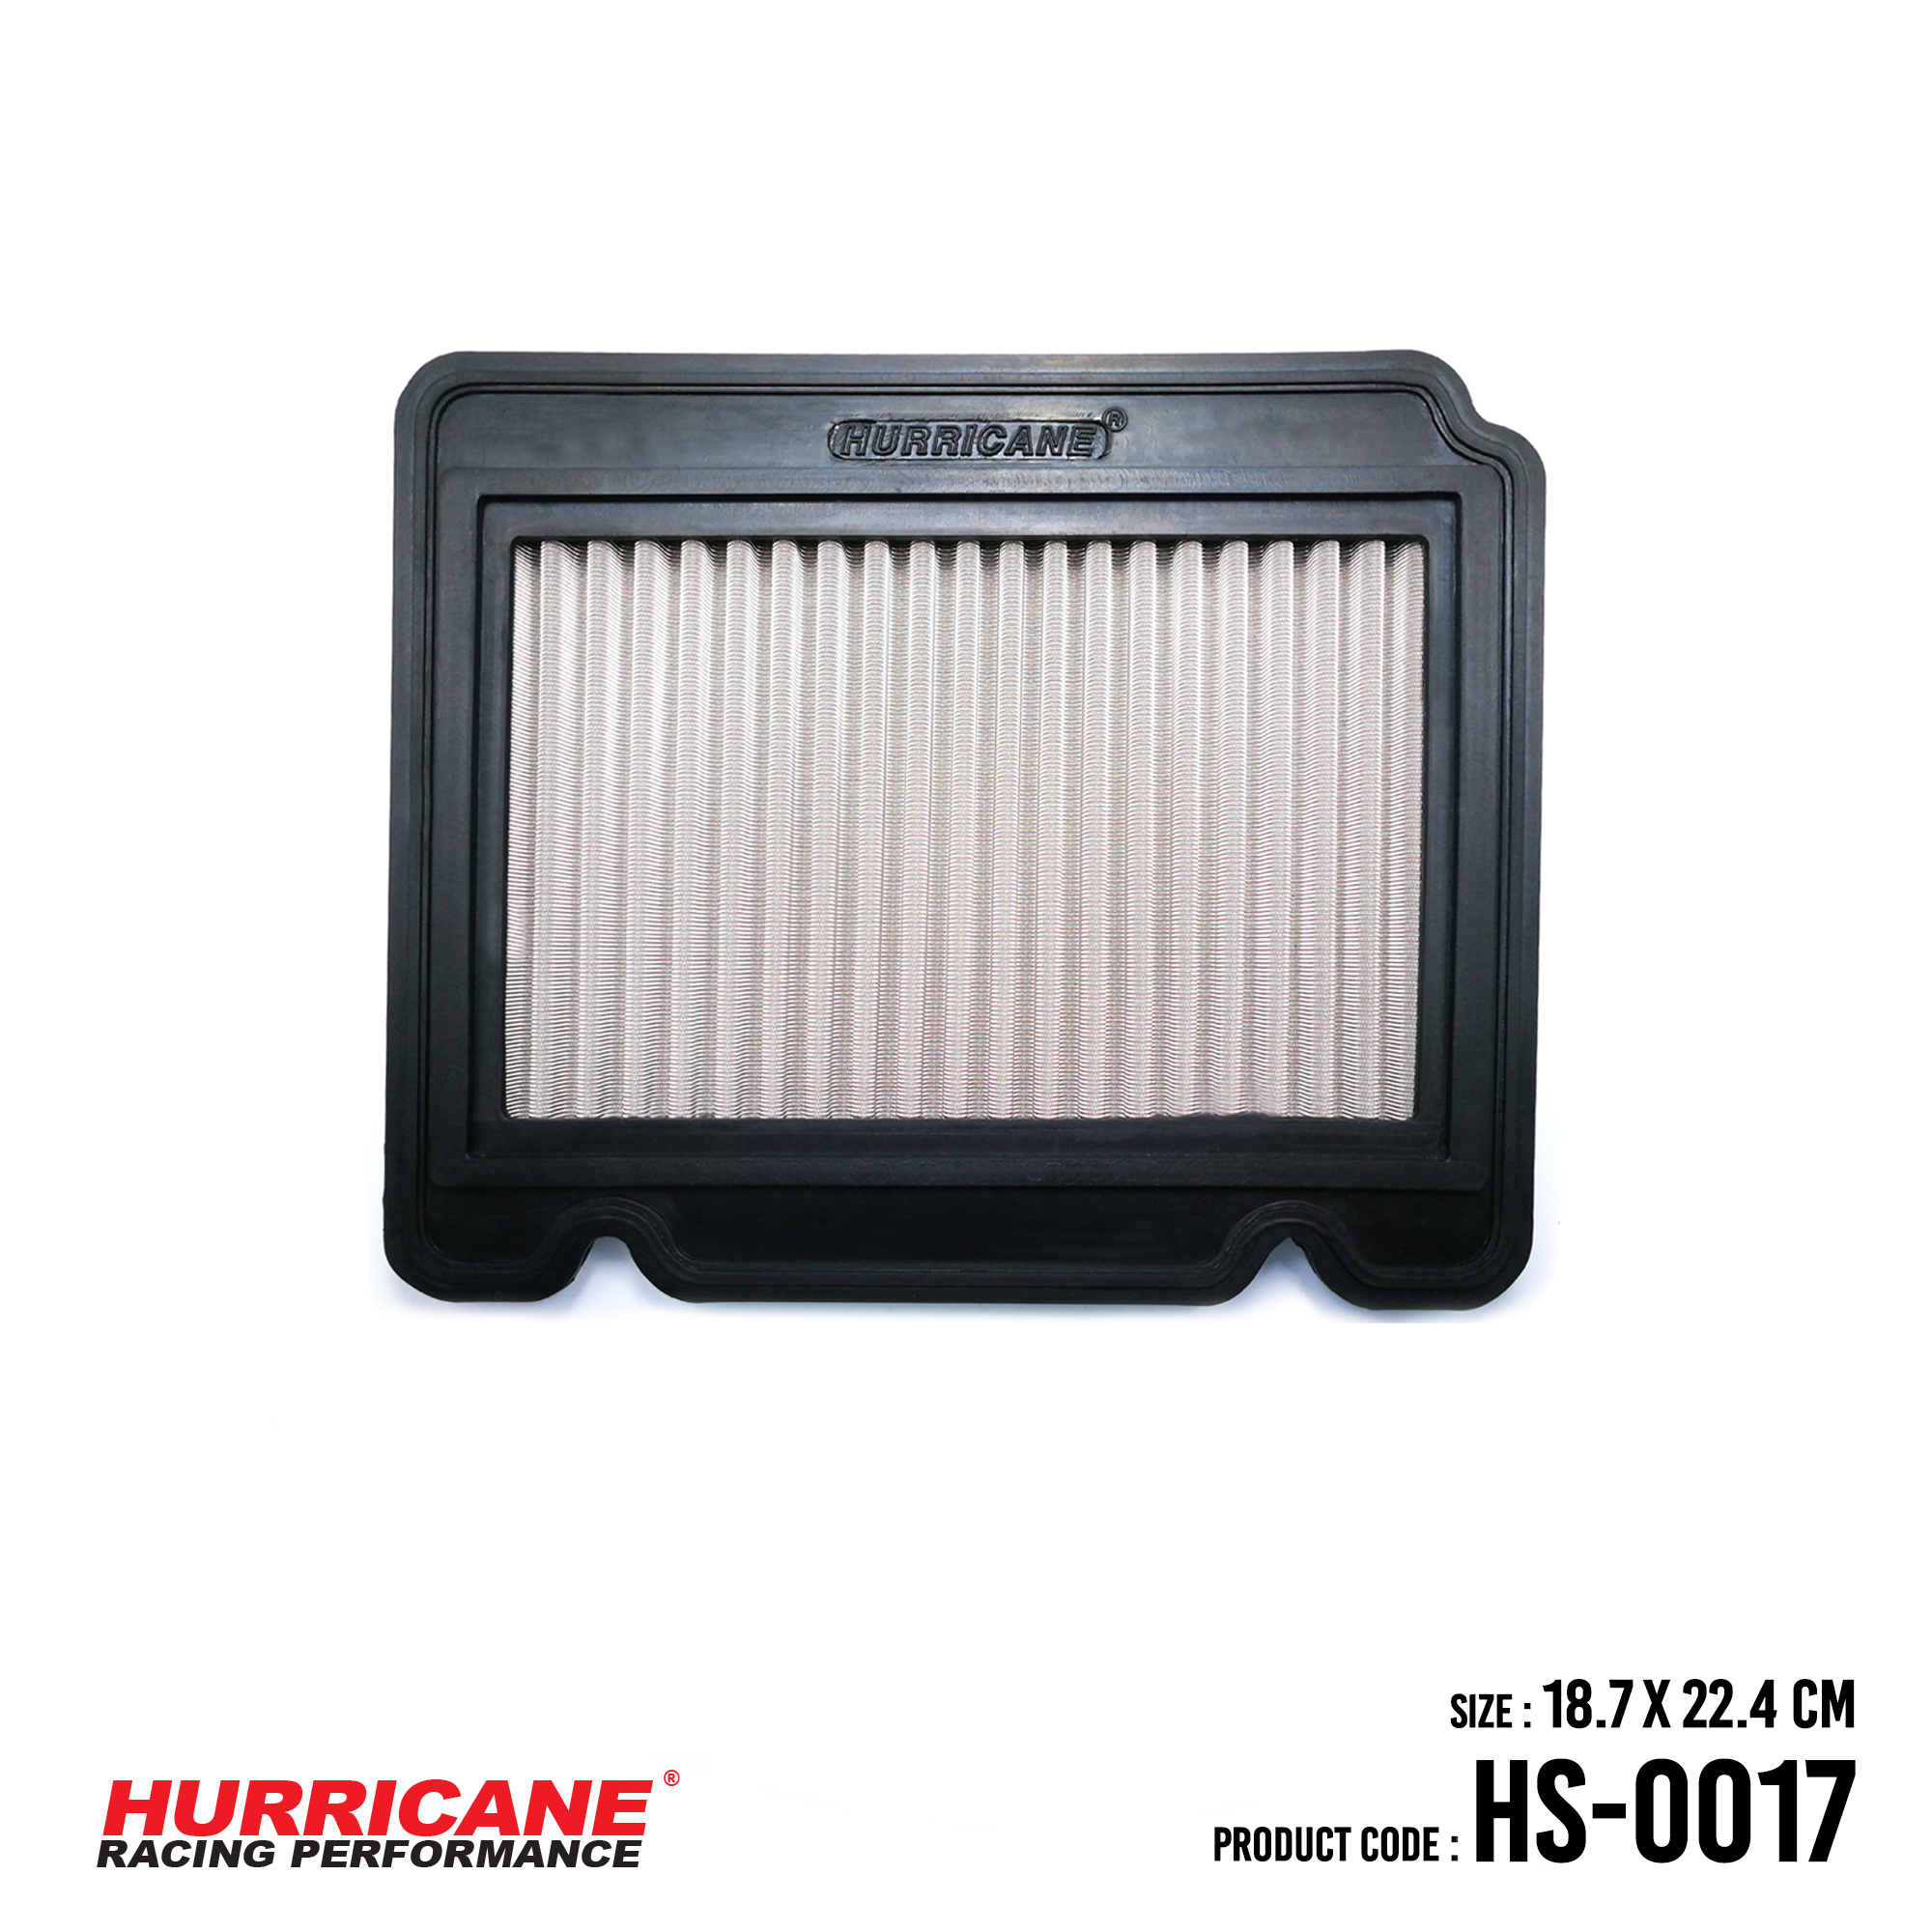 HURRICANE STAINLESS STEEL AIR FILTER FOR HS-0017 ChevroletDaewooPontiac